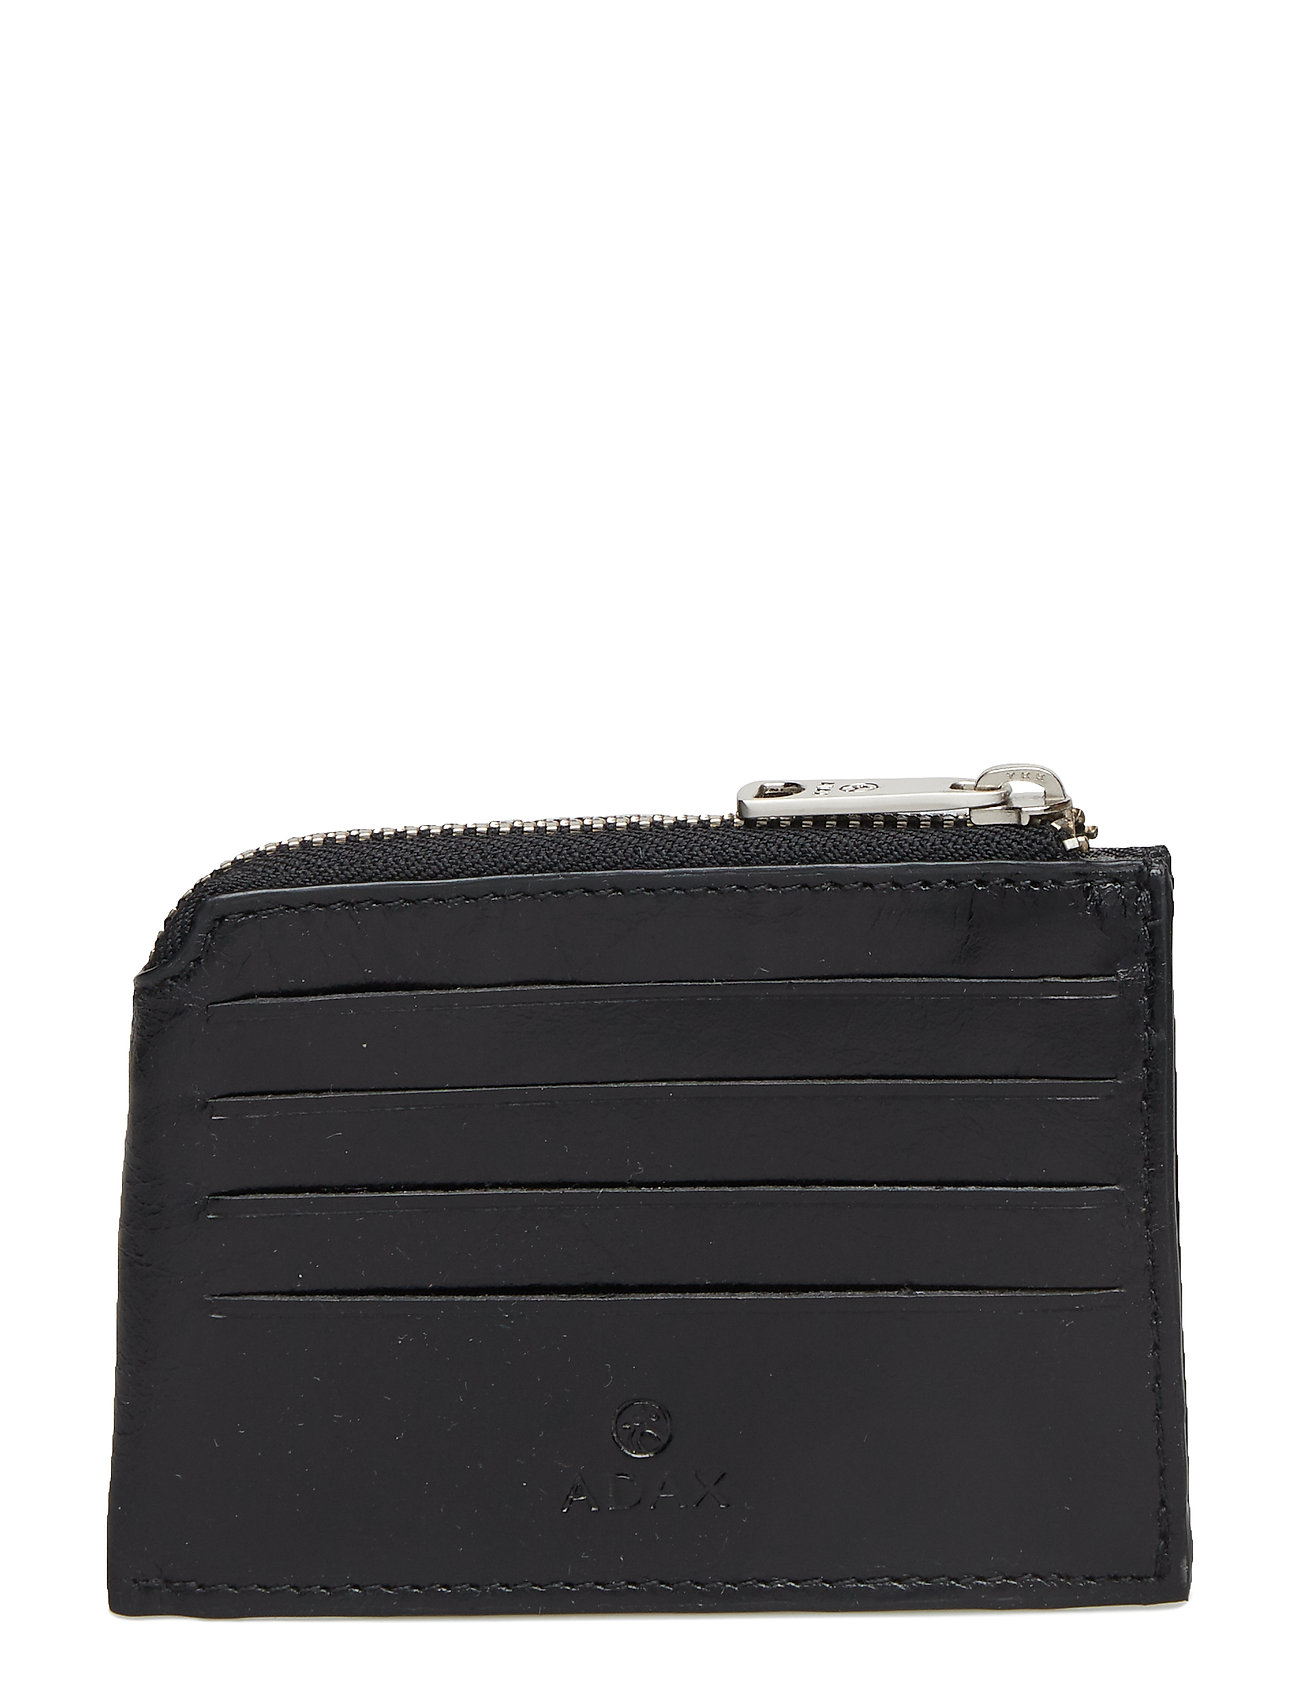 Image of Salerno Credit Card Holder Susy Bags Card Holders & Wallets Card Holder Sort Adax (3271716459)